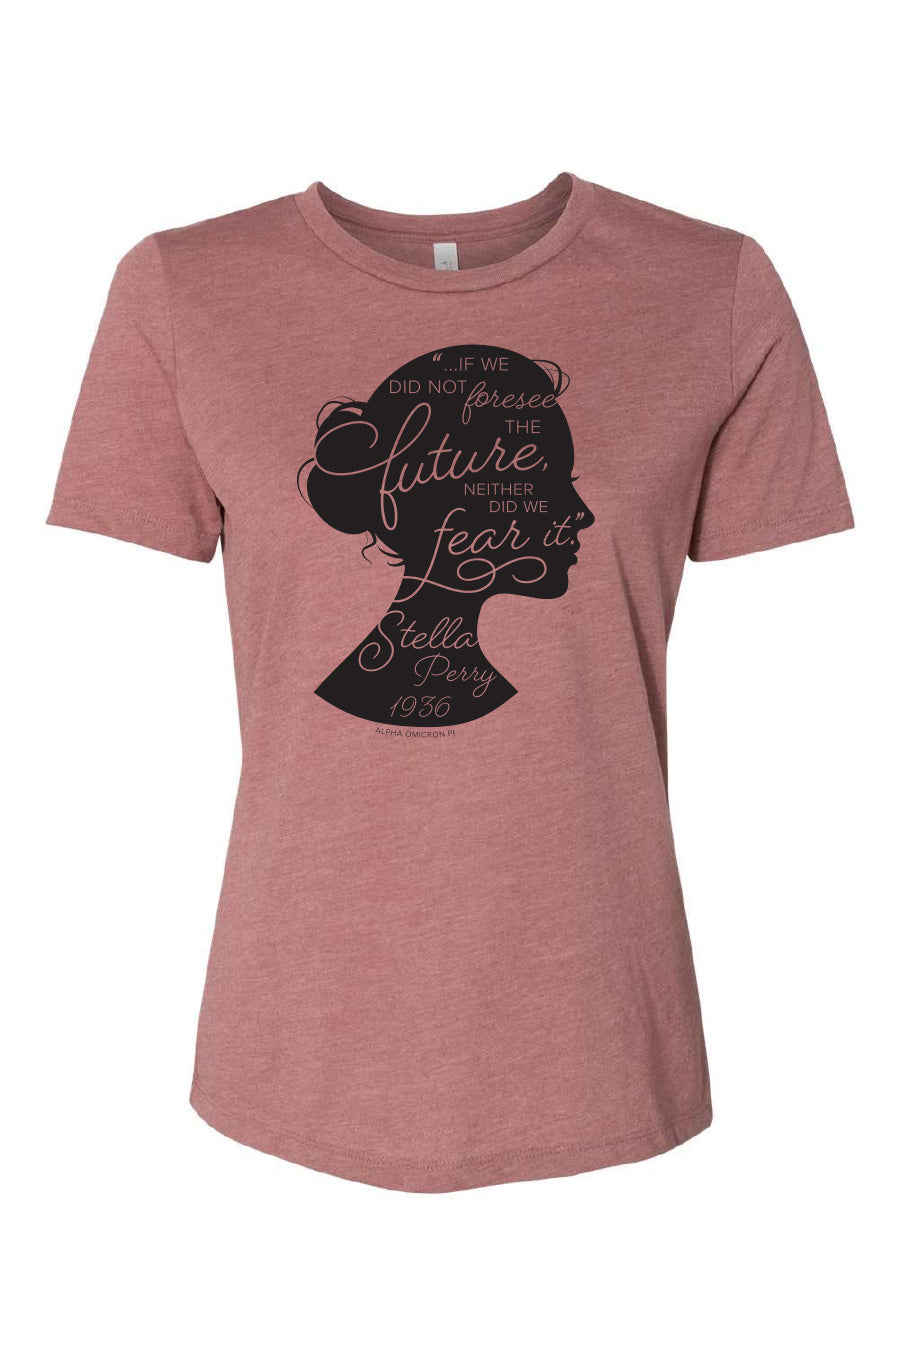 Stella Perry Tee